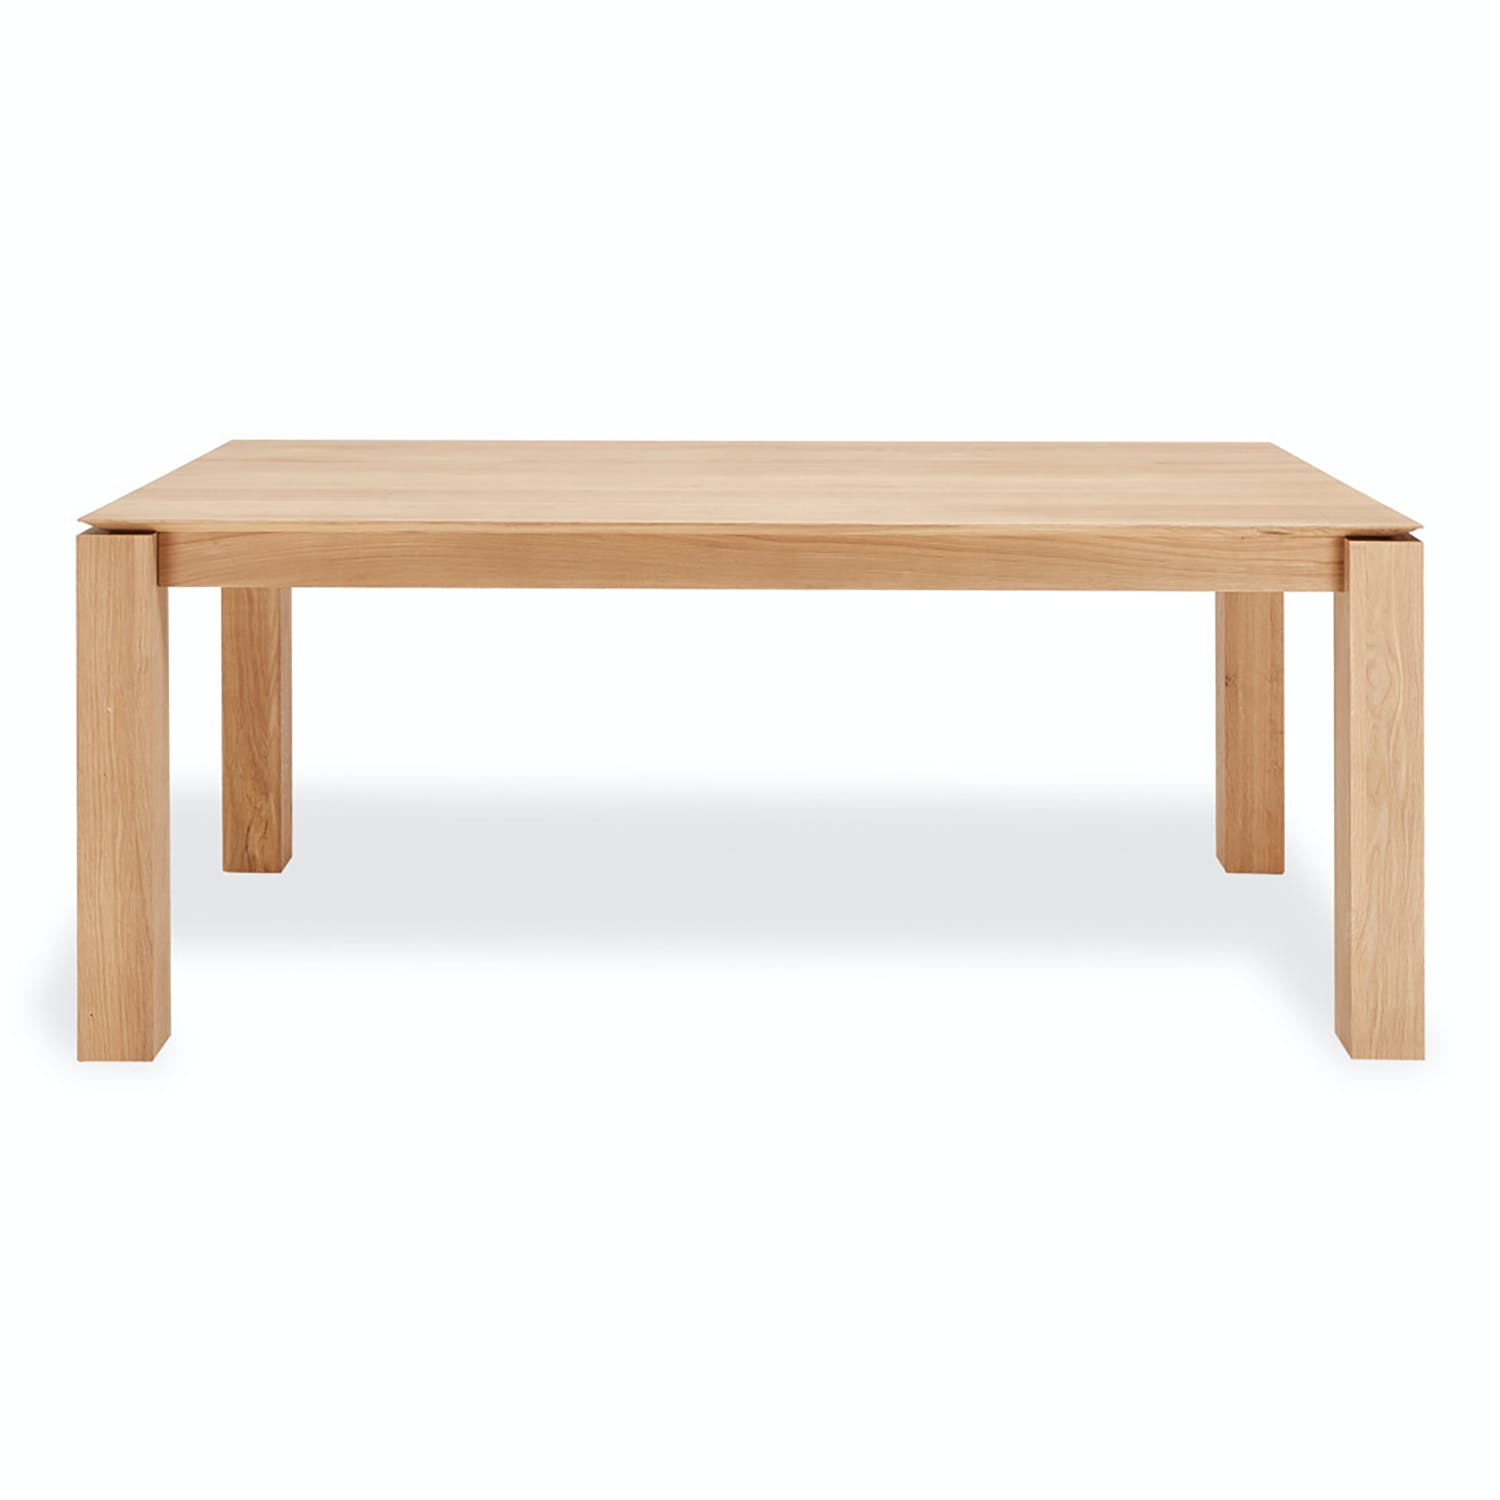 Product Image - Oak Slice Extendable Dining Table